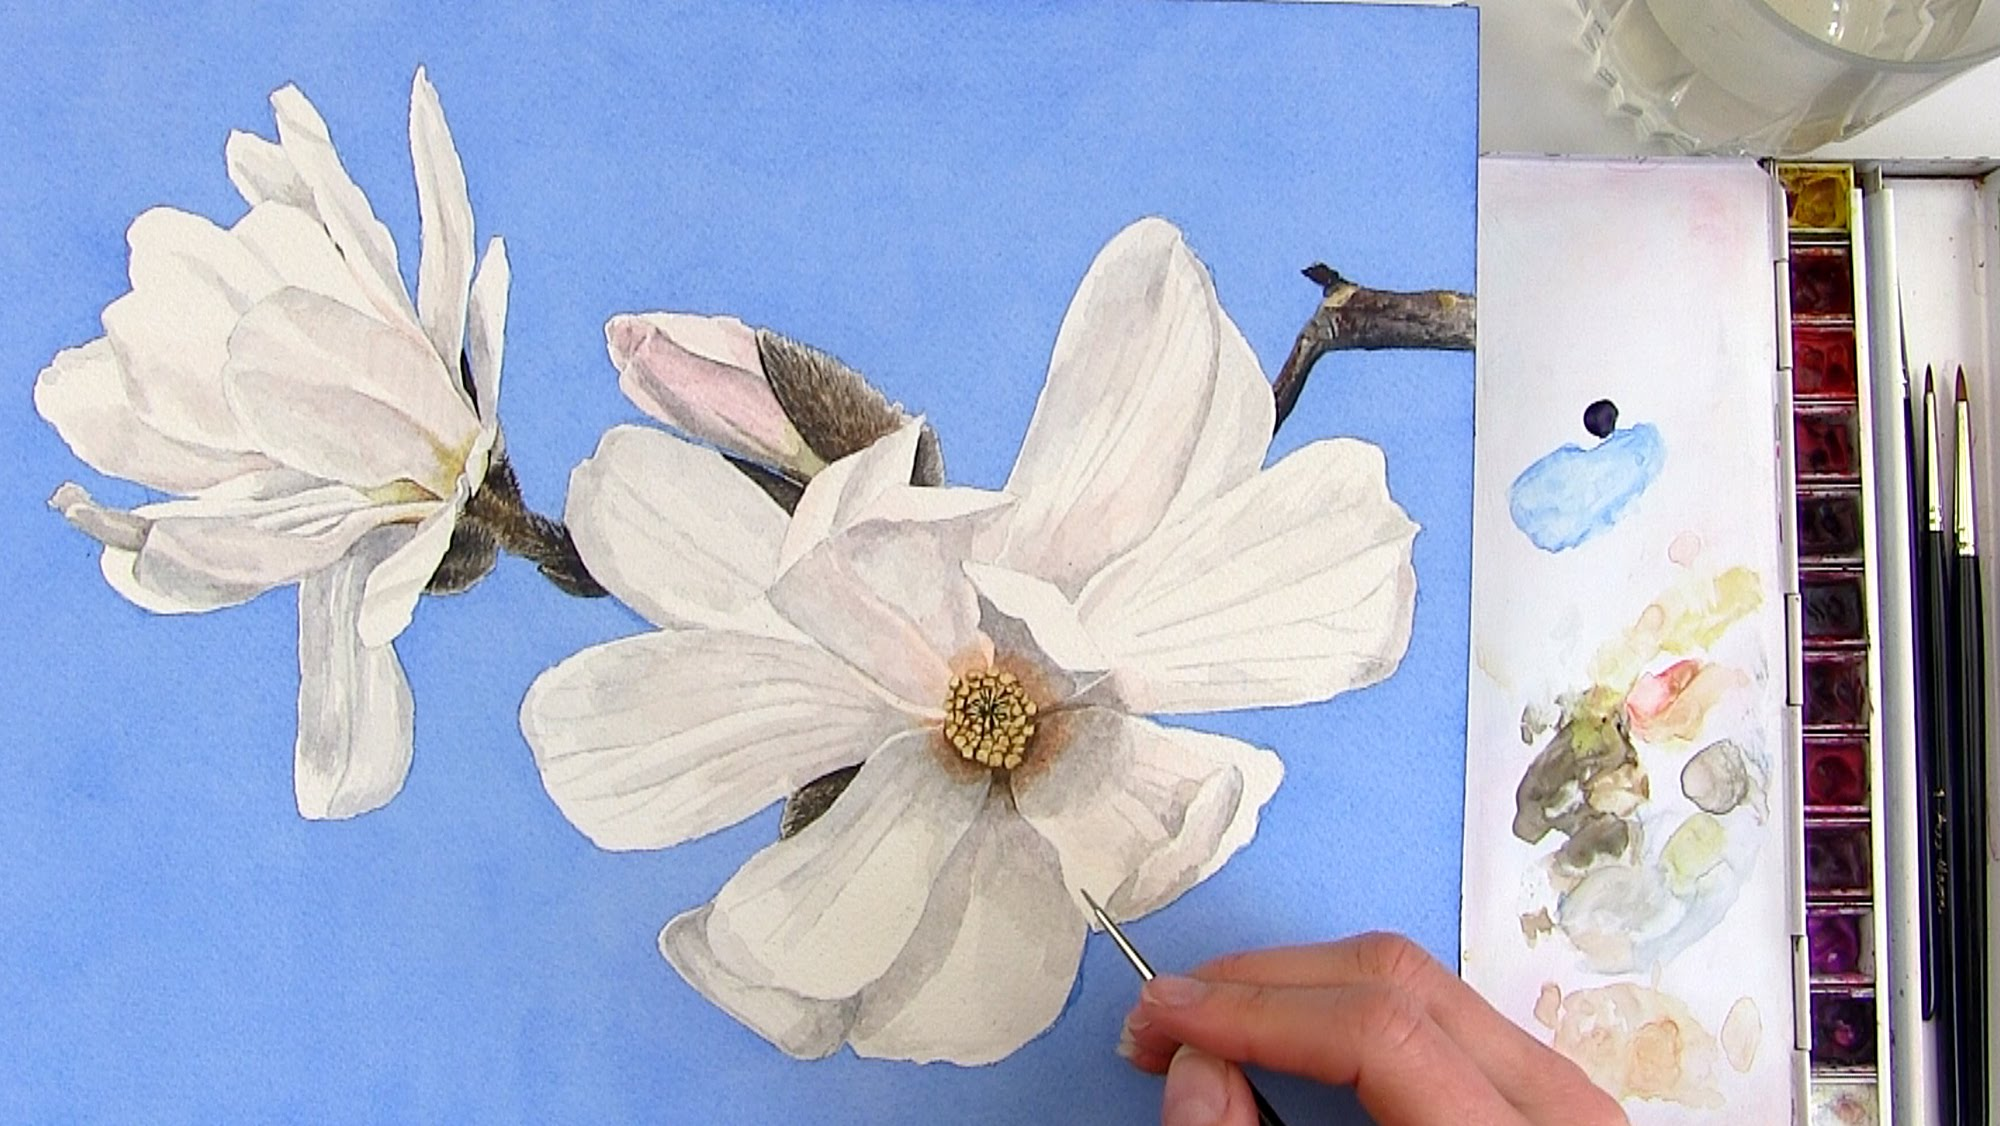 2000x1126 How To Paint A Realistic White Magnolia Flower In Watercolor